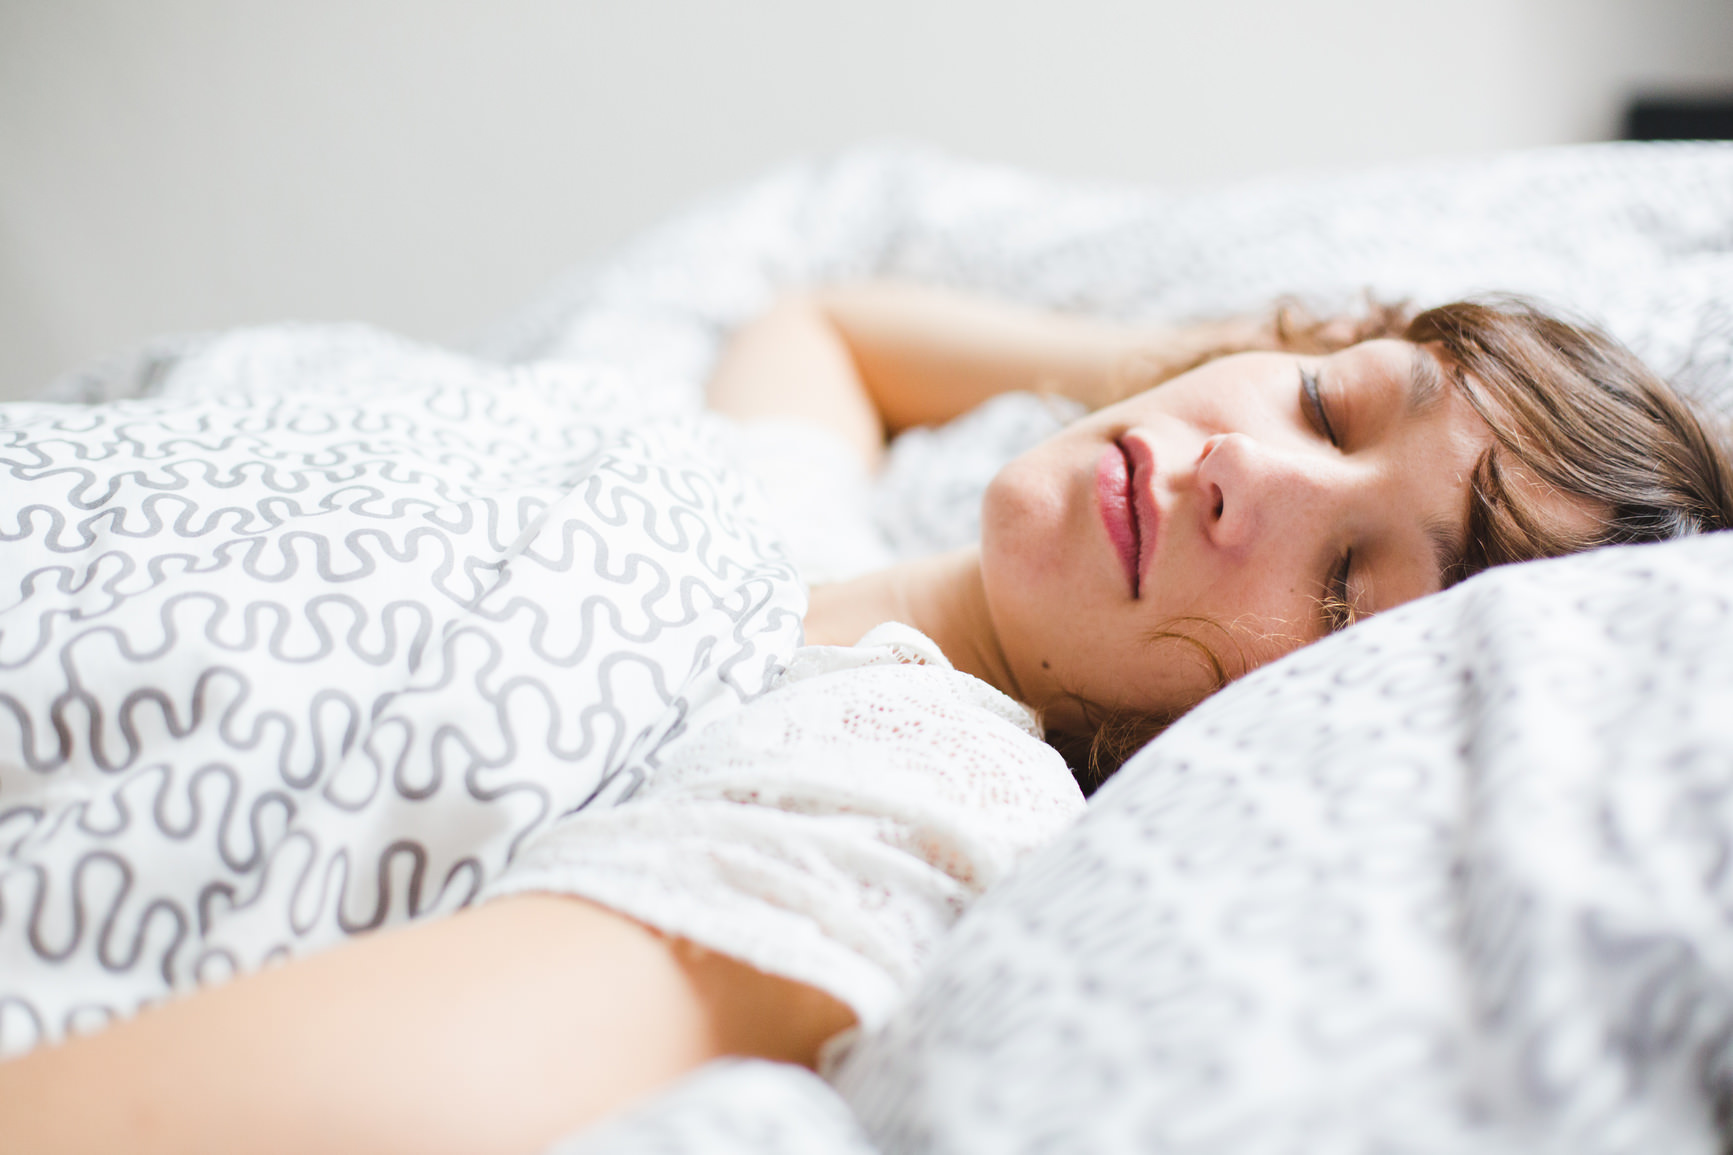 8 Most Common Sleep Disorders that you Should Know About